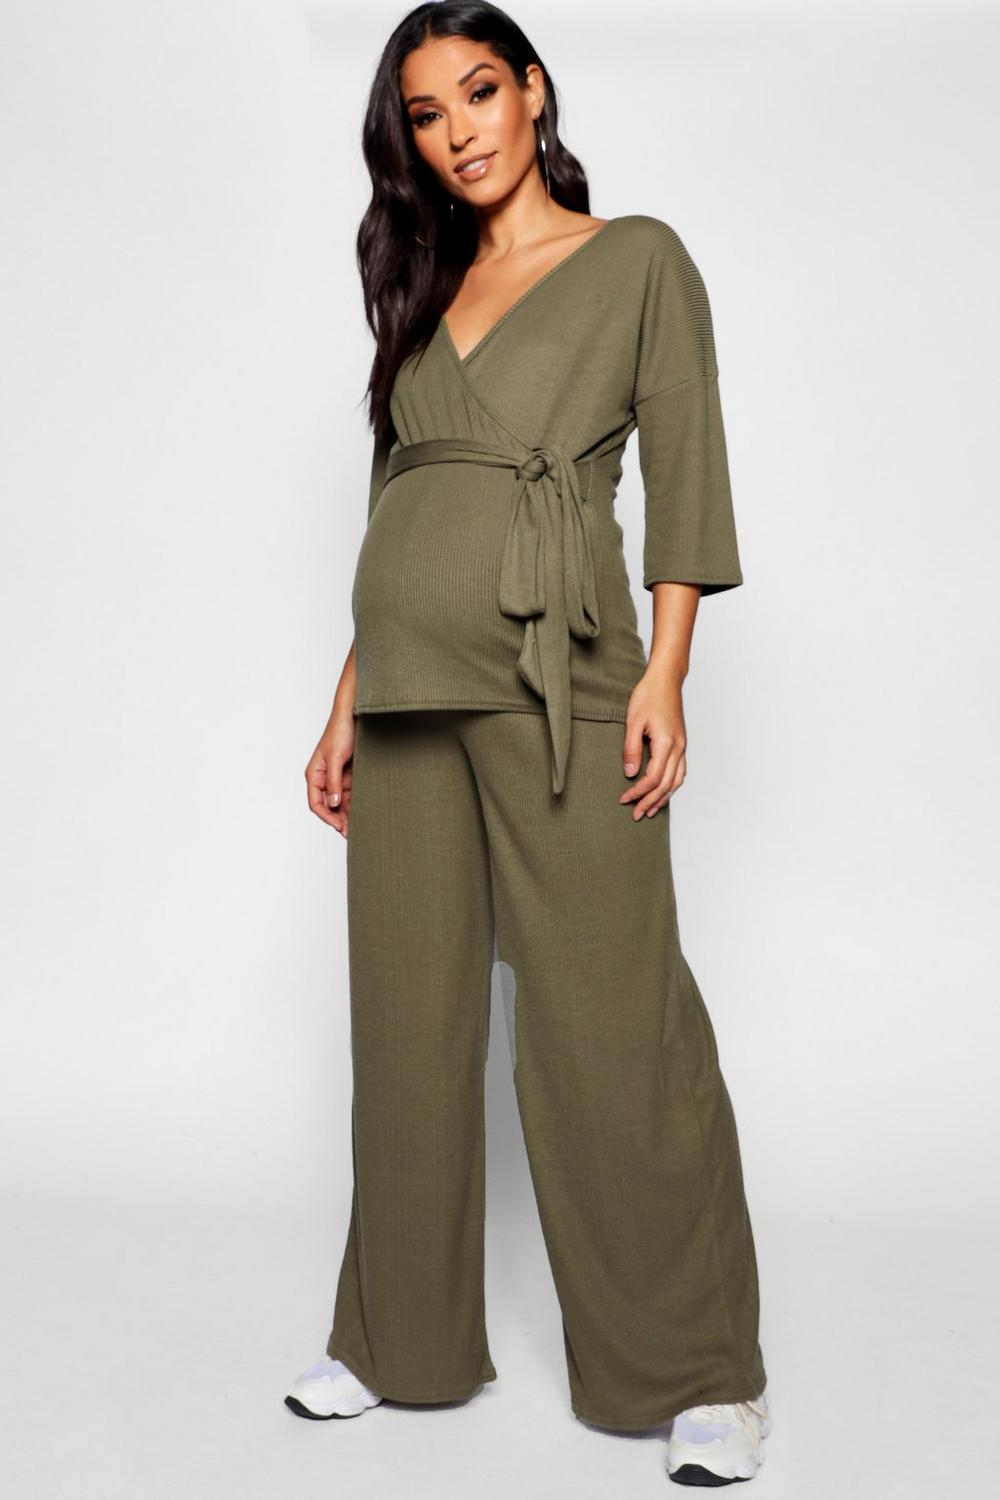 aae0ef755594e6 Maternity Wrap Top   Wide Leg Trouser Co Ord. Hover to zoom